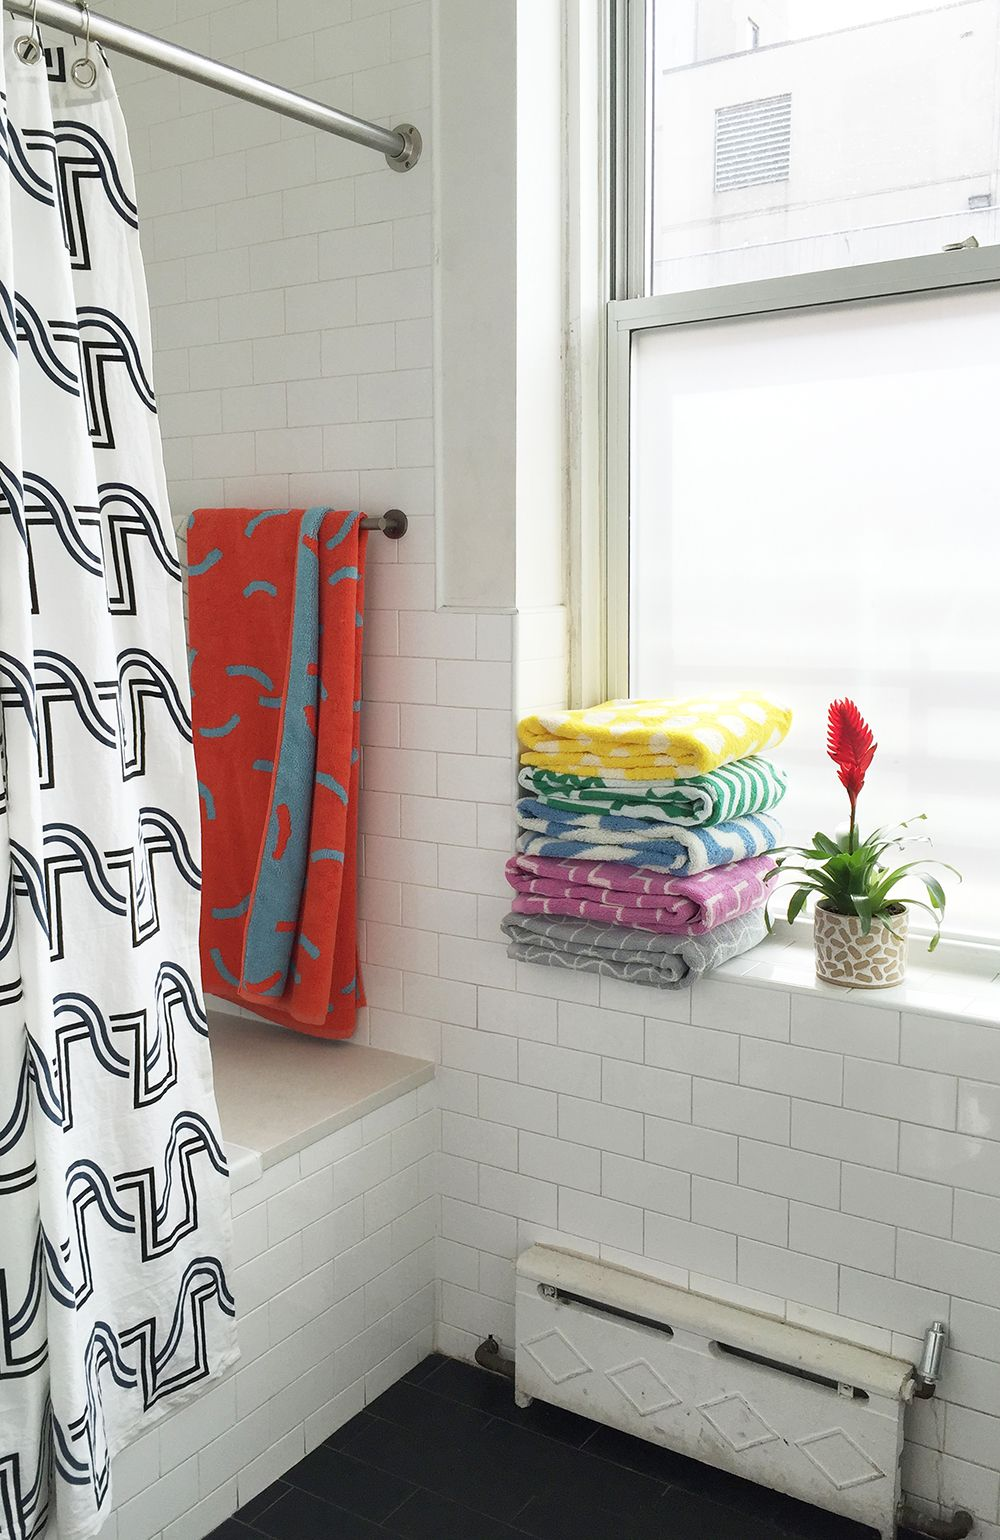 Bath Towels And Beach Towels From Dusen Dusen Click Through To - Orange patterned towels for small bathroom ideas